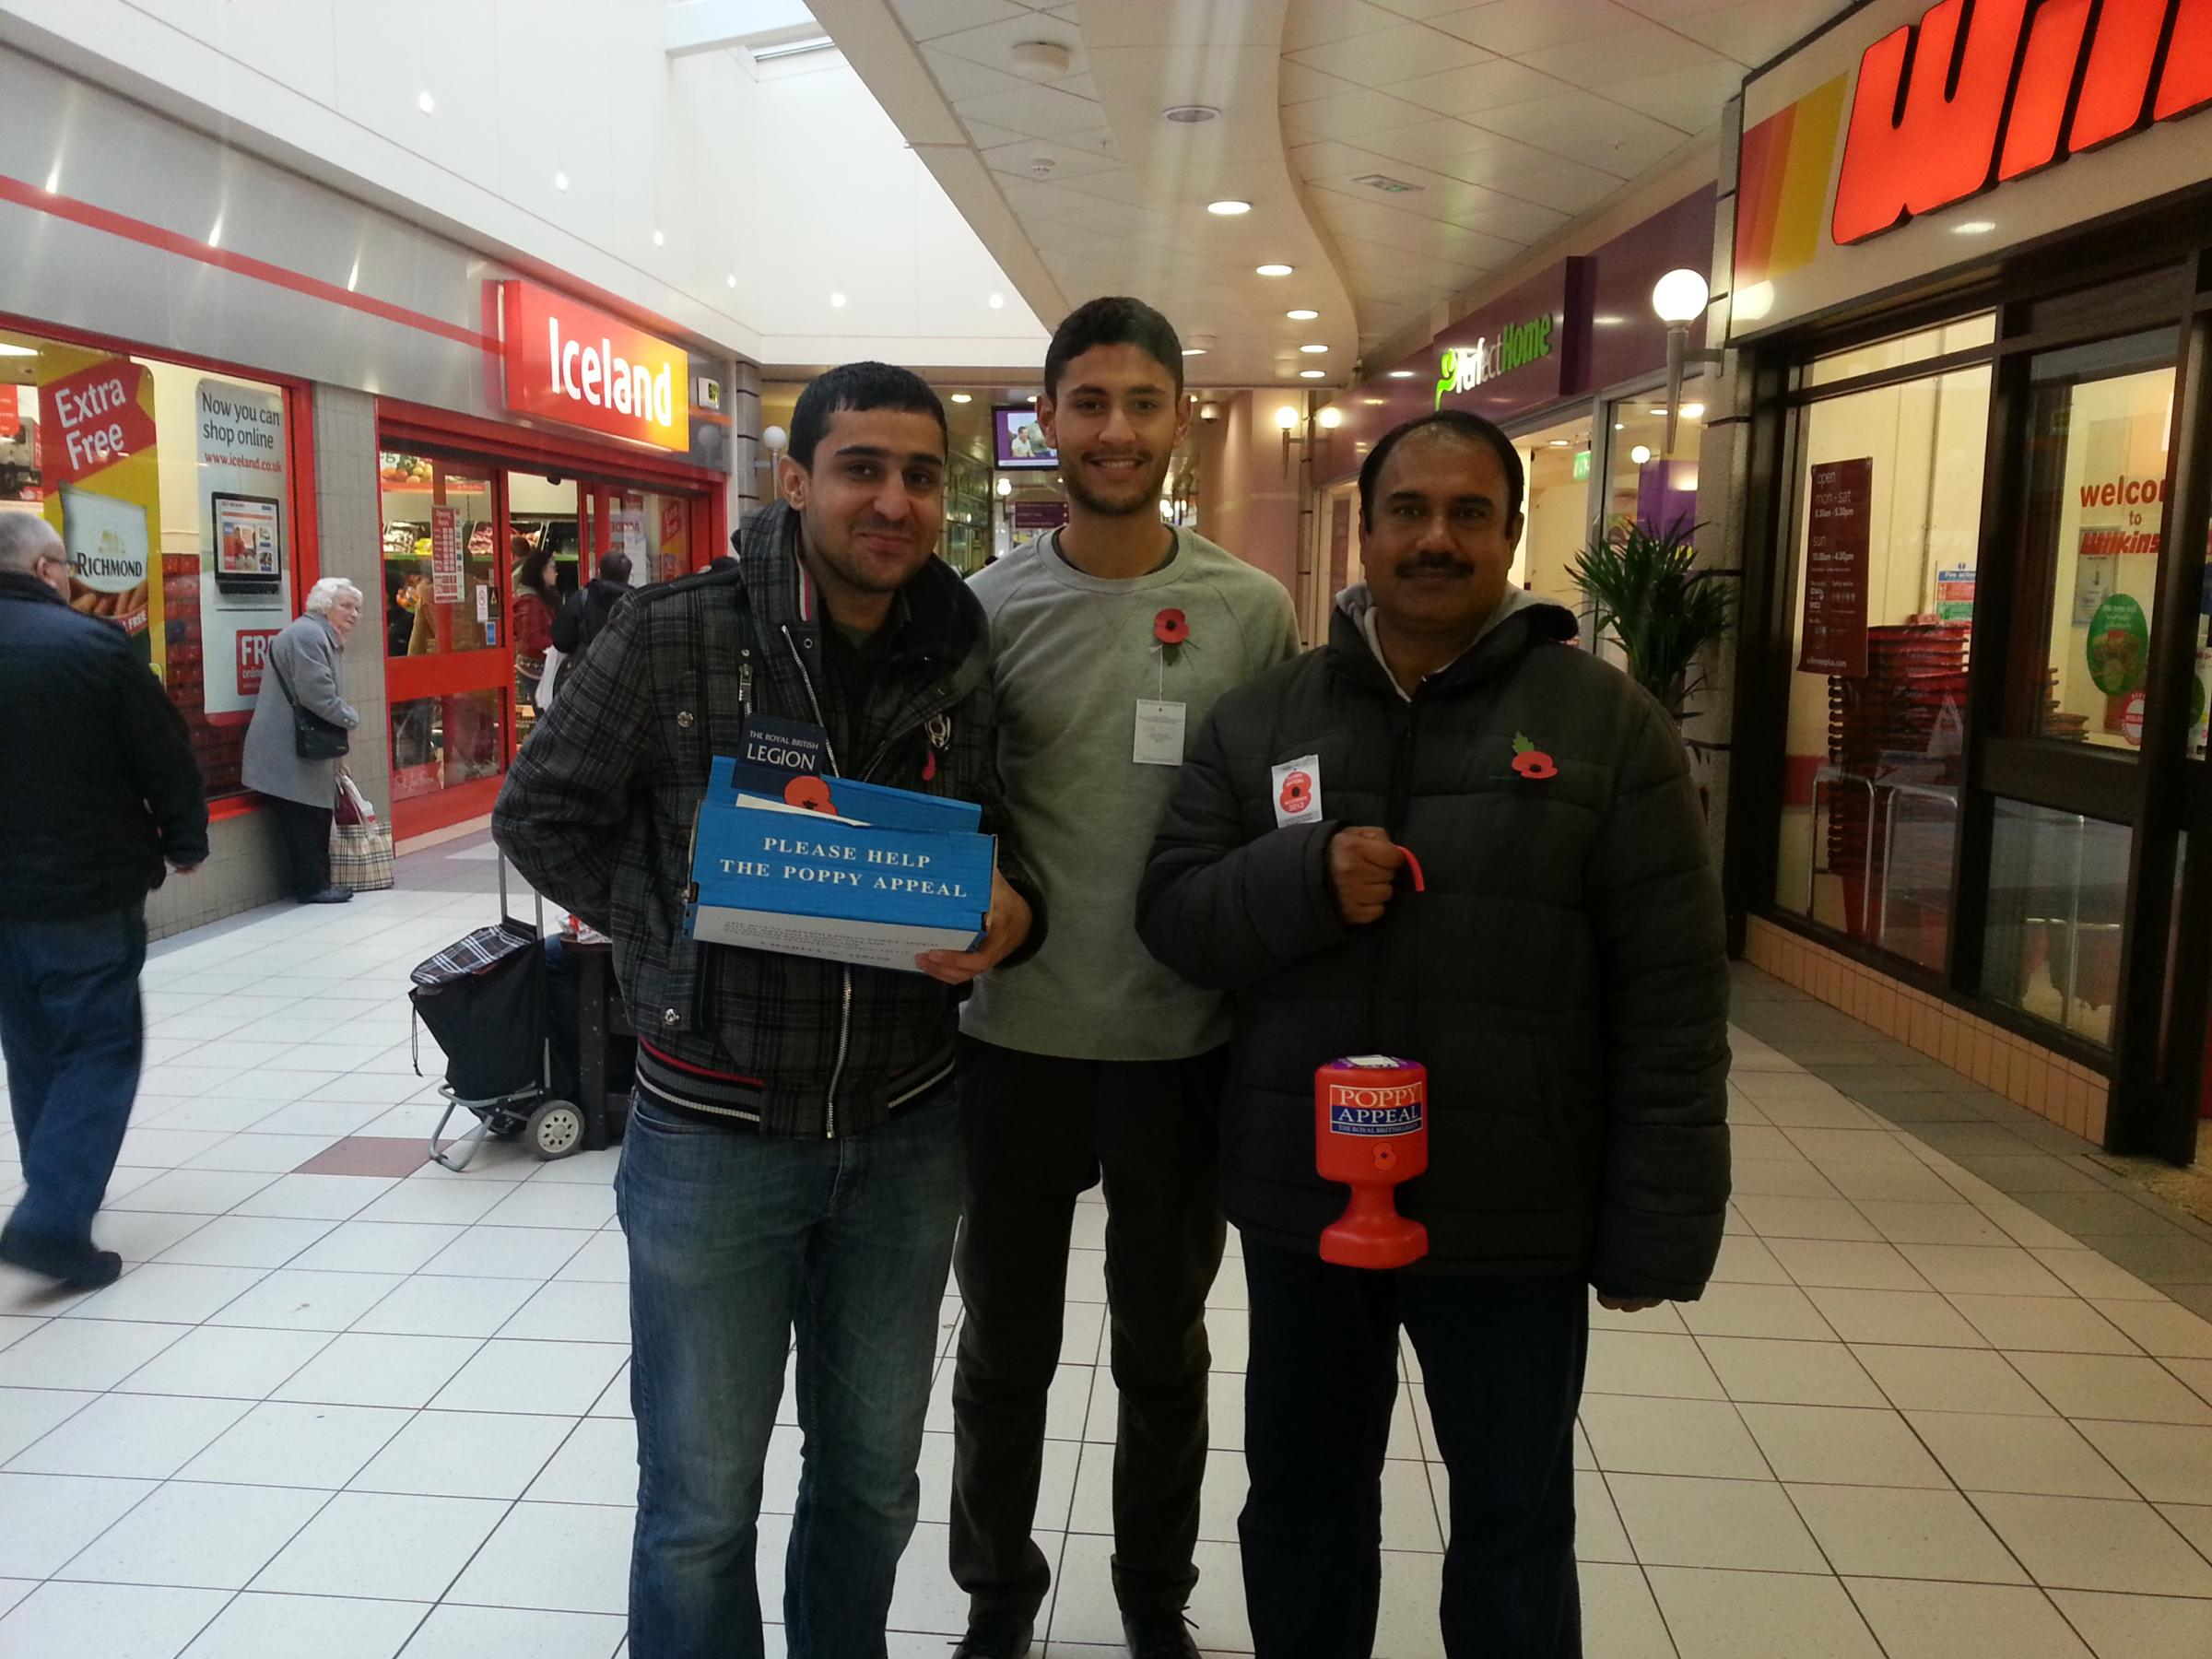 CHARITY WORK: Right to left, Zaheer Ahmad, Syed Adil Ahmad and Moaz Ahmad, from Ahmadiyya Muslim Youth Association, collecting for the Popp Appeal at the Castlegate Shopping Centre, in Stockton.